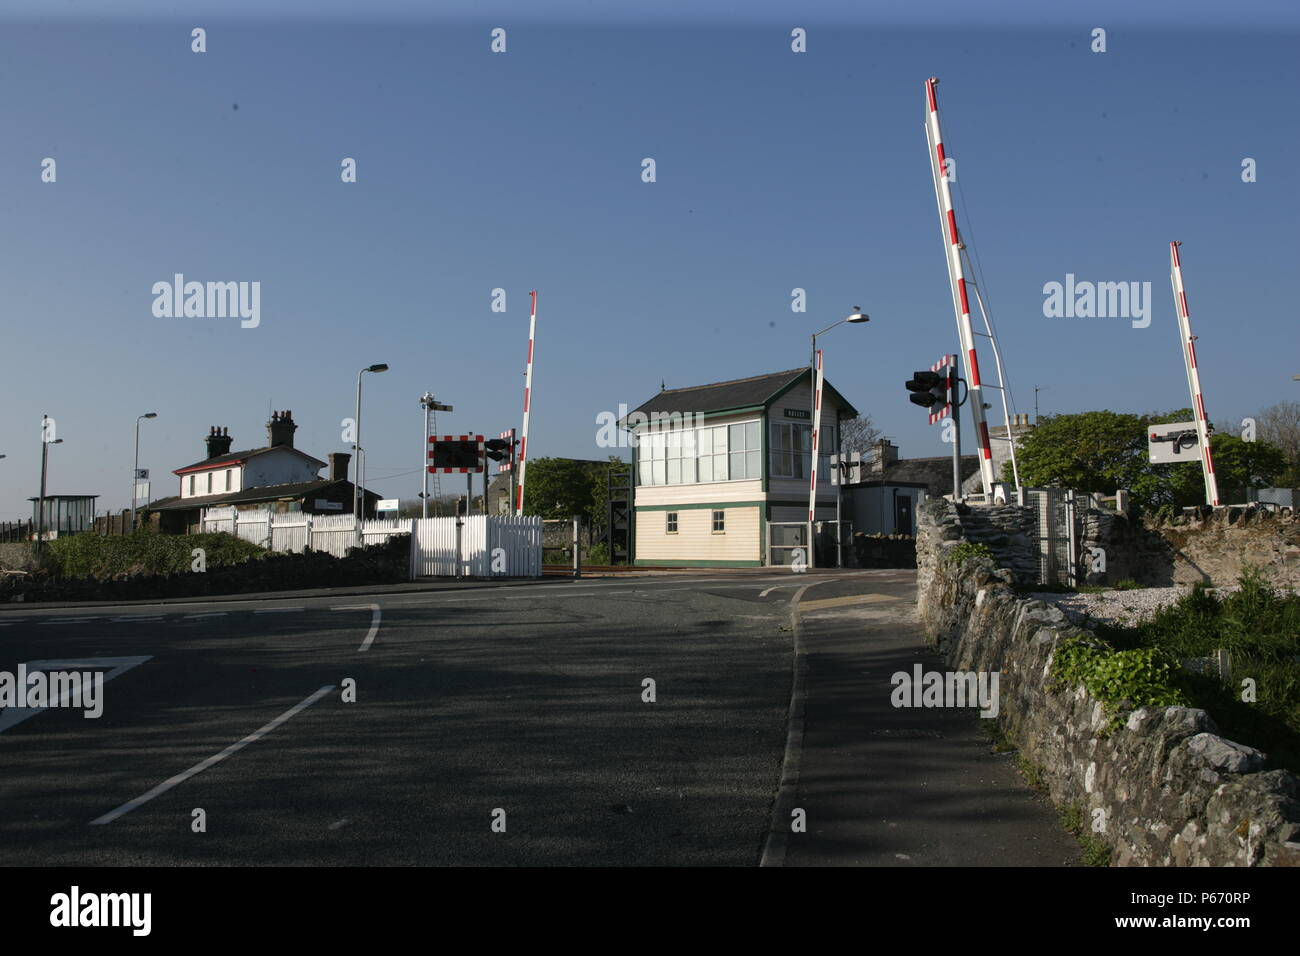 The signal box and level crossing at Valley station, Anglesey. 2007 - Stock Image